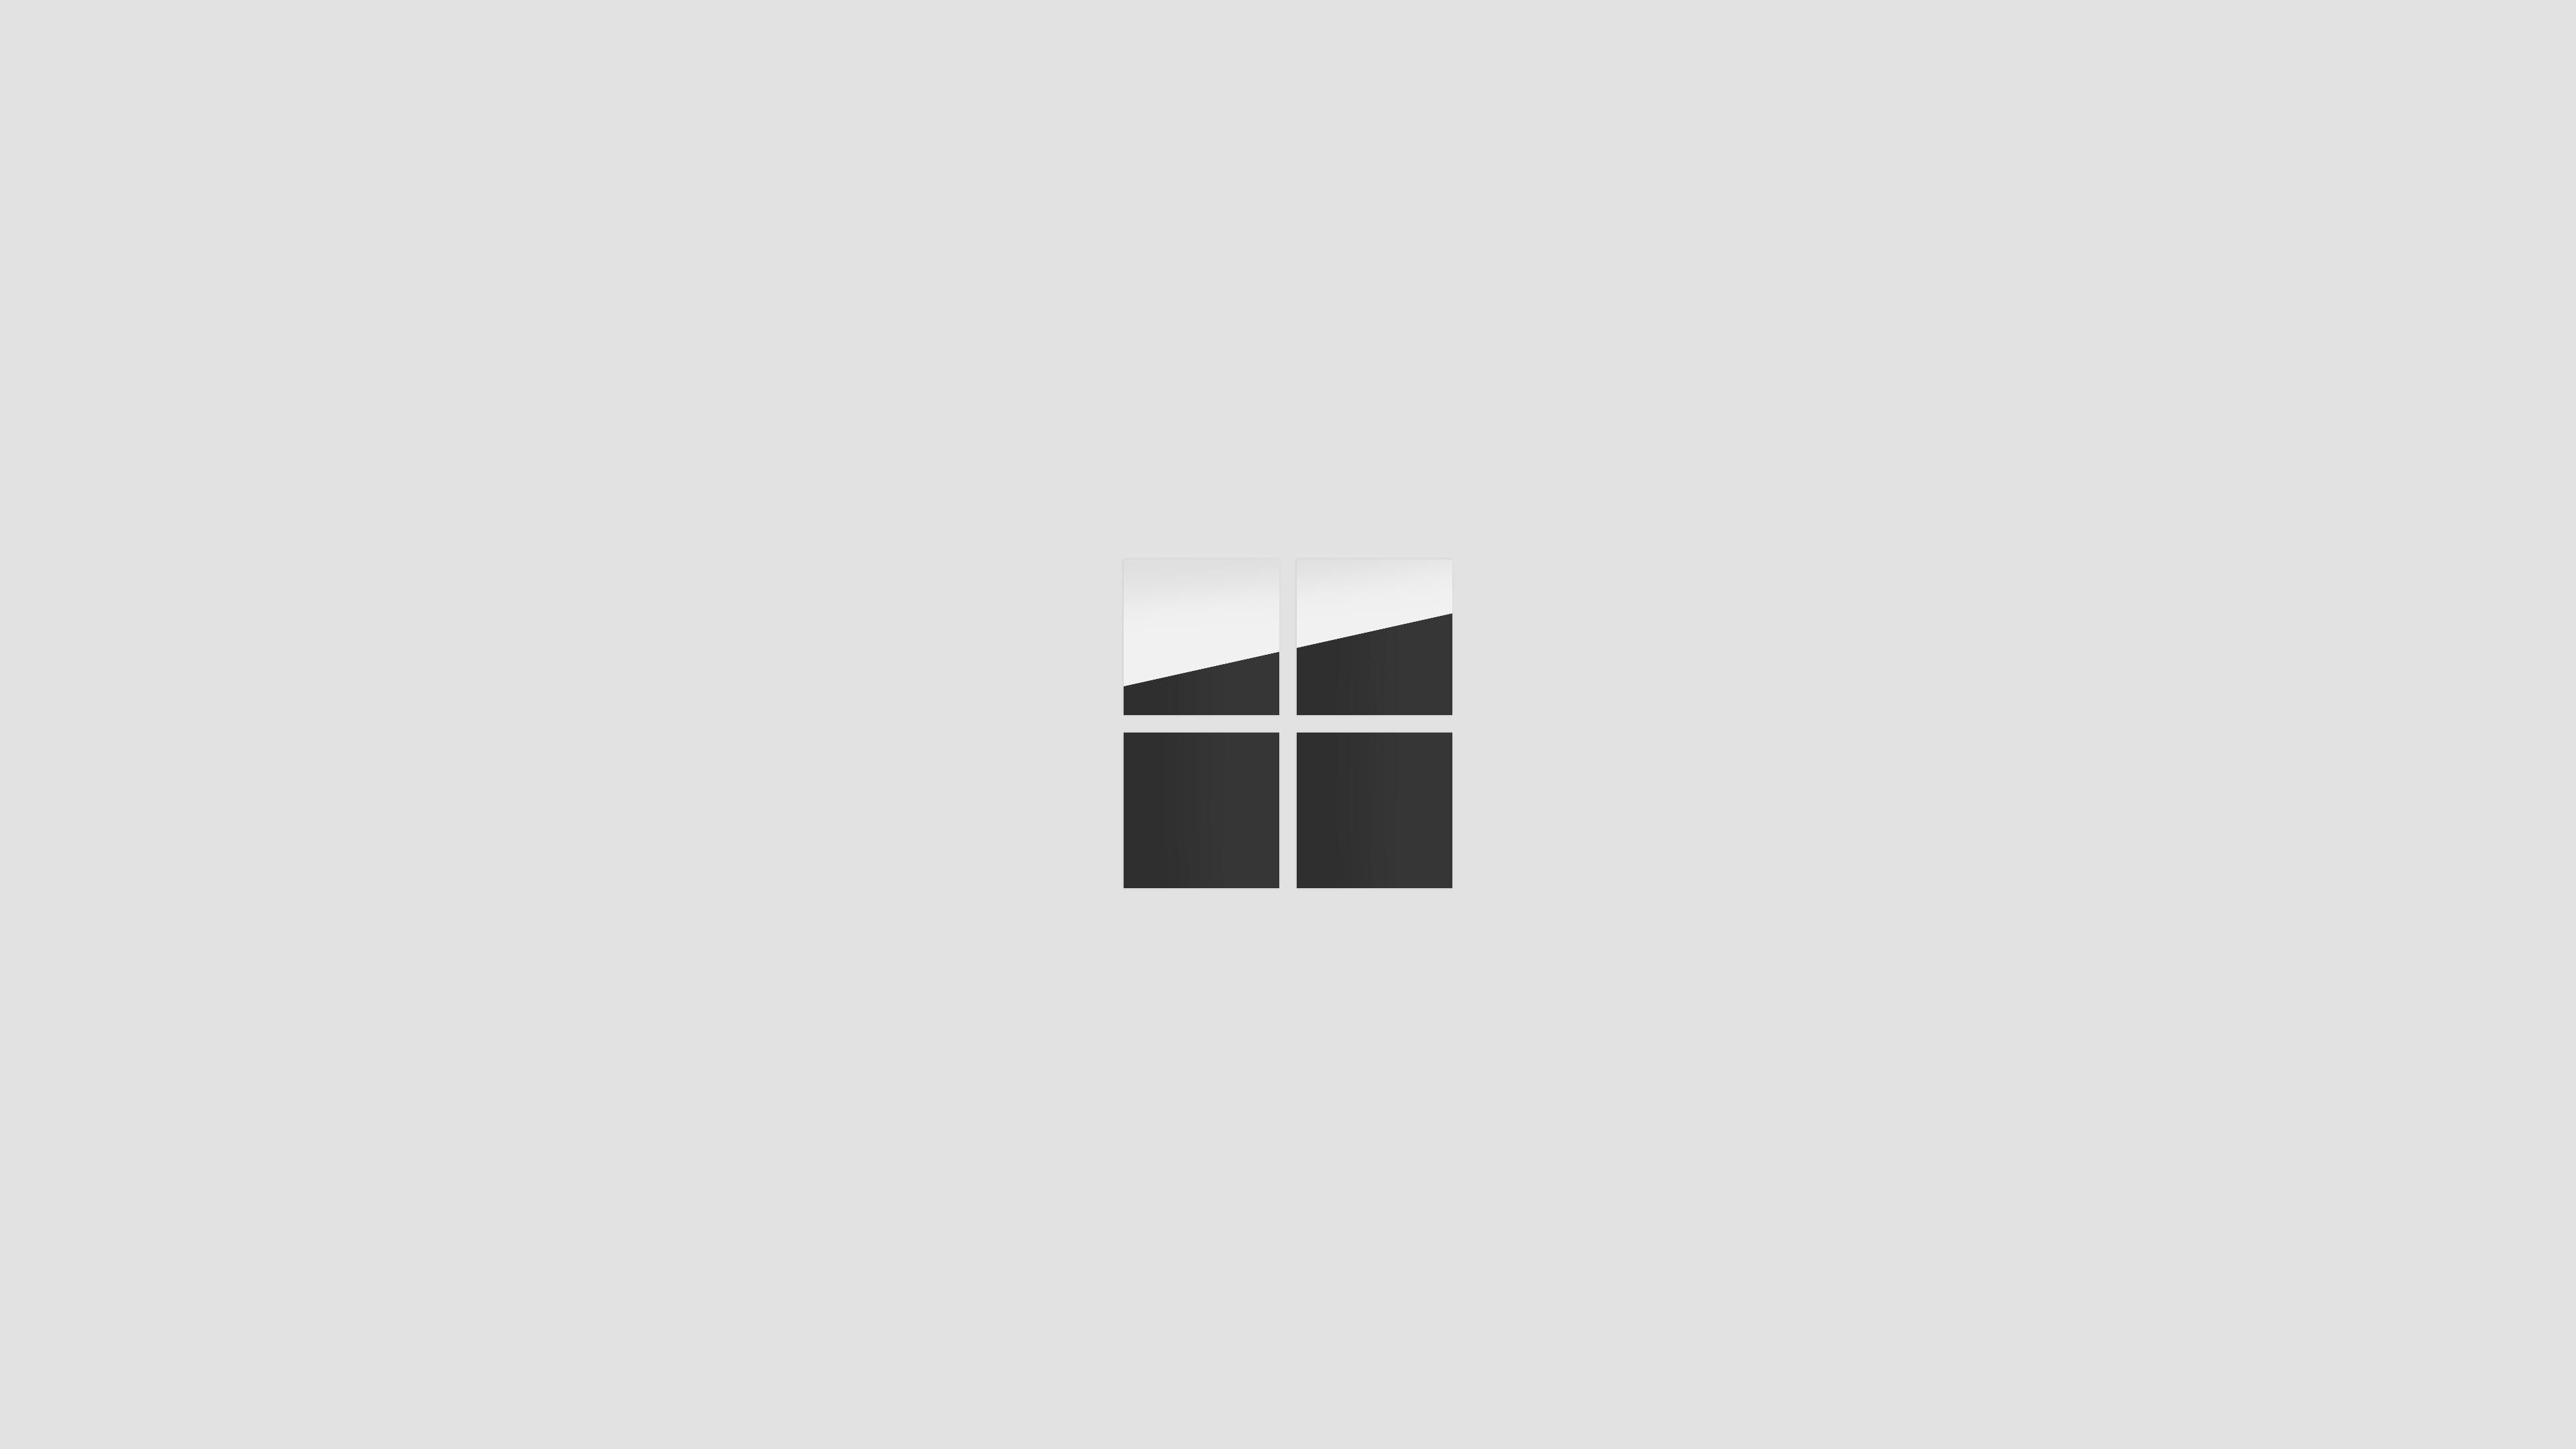 Have made a 4K adapted version of Microsoft Surface logo.